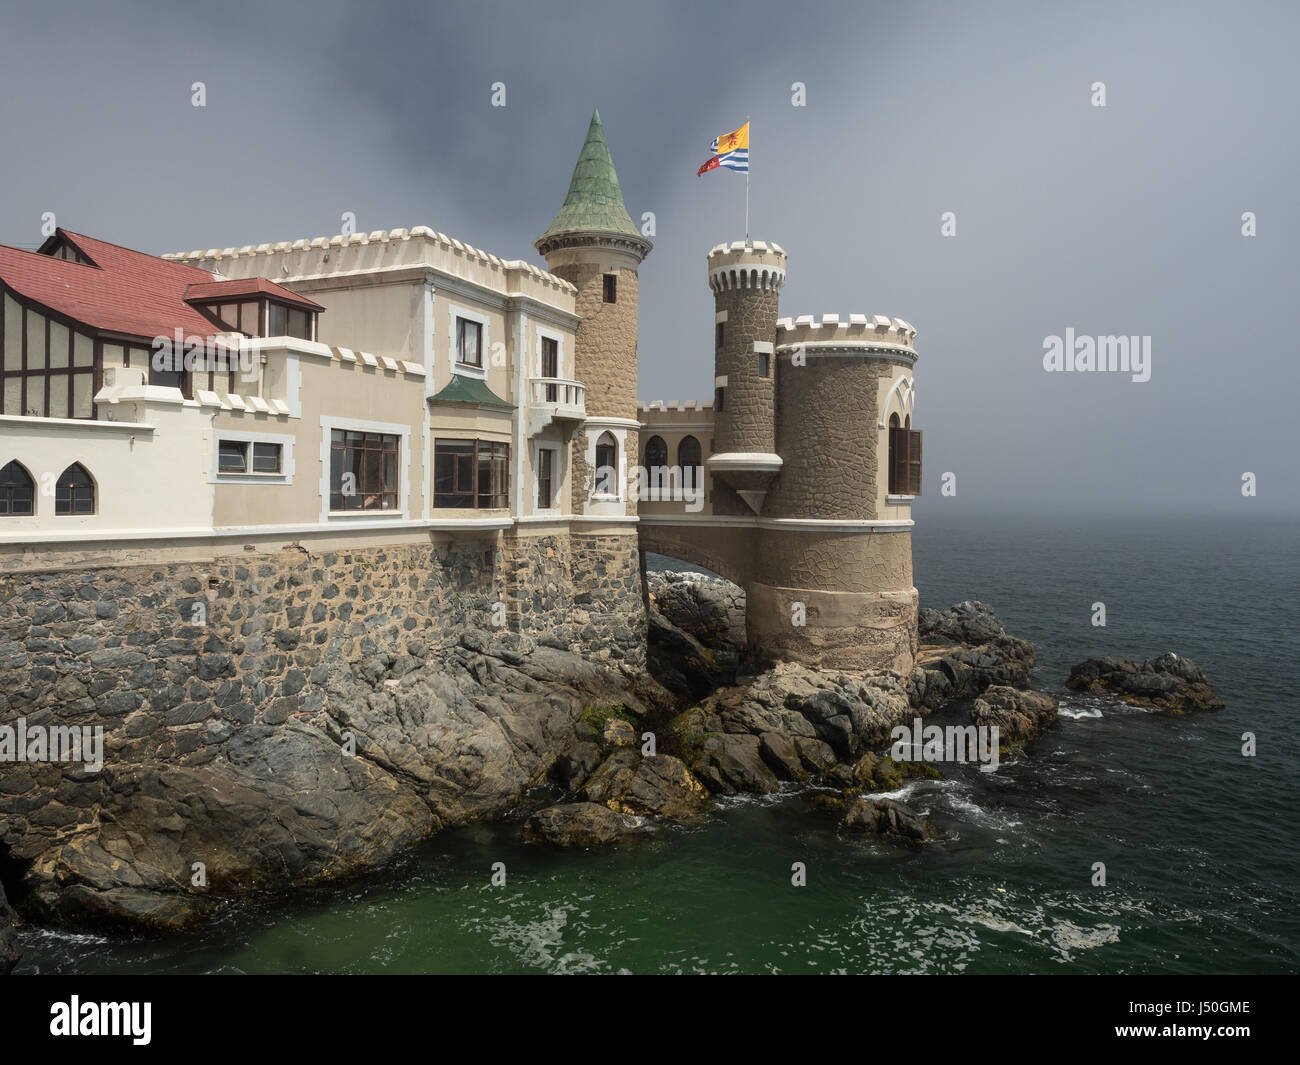 Wulff Castle is a historic castle overlooking the sea in Viña del Mar, Chile. It was built in 1906 for the - Stock Image